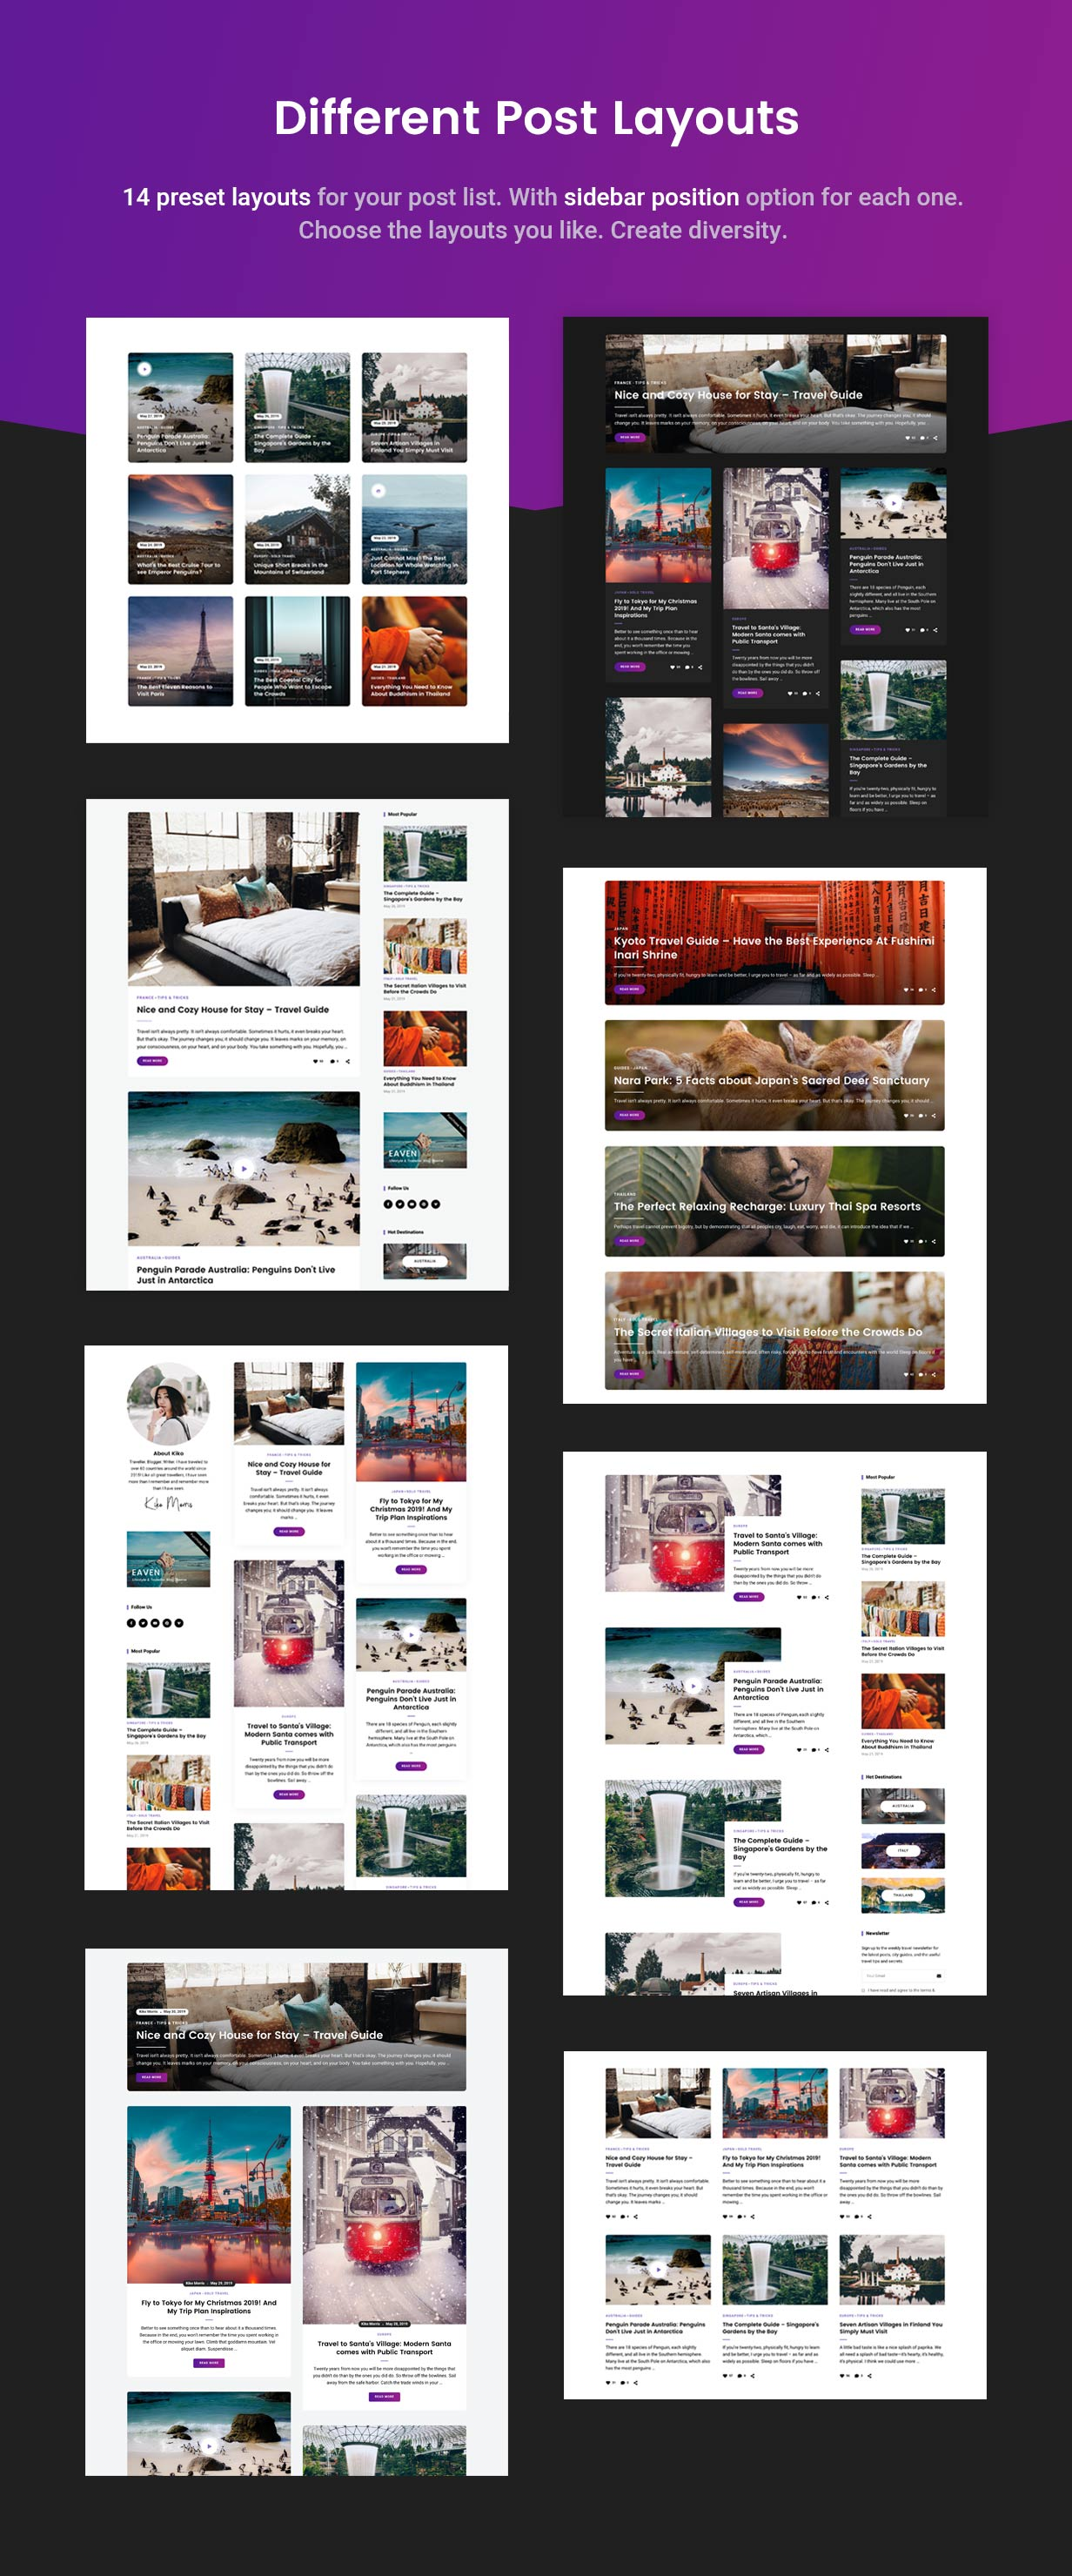 14 Posts Layout Variations